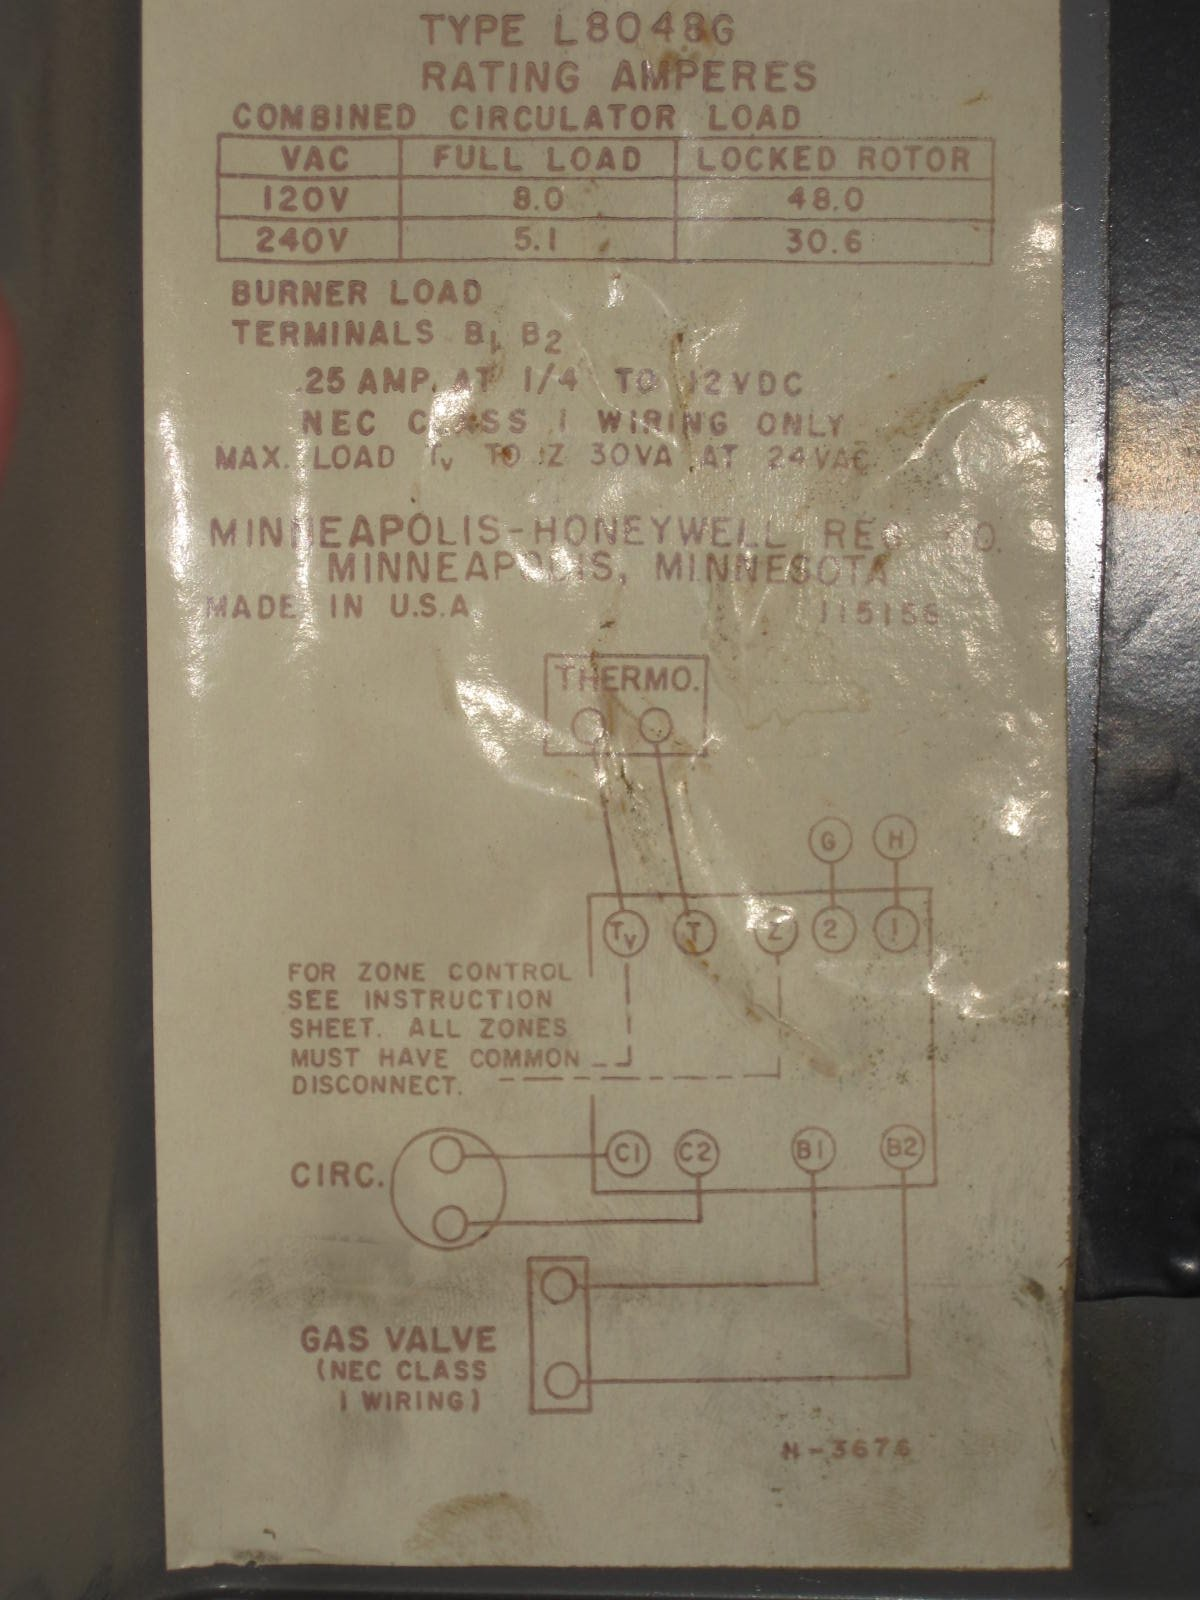 honeywell aquastar l8048g 2 taco zone valves adding a 24v rh forum heatinghelp com taco 007-zf5-5 wiring diagram taco 007-sf5 wiring diagram